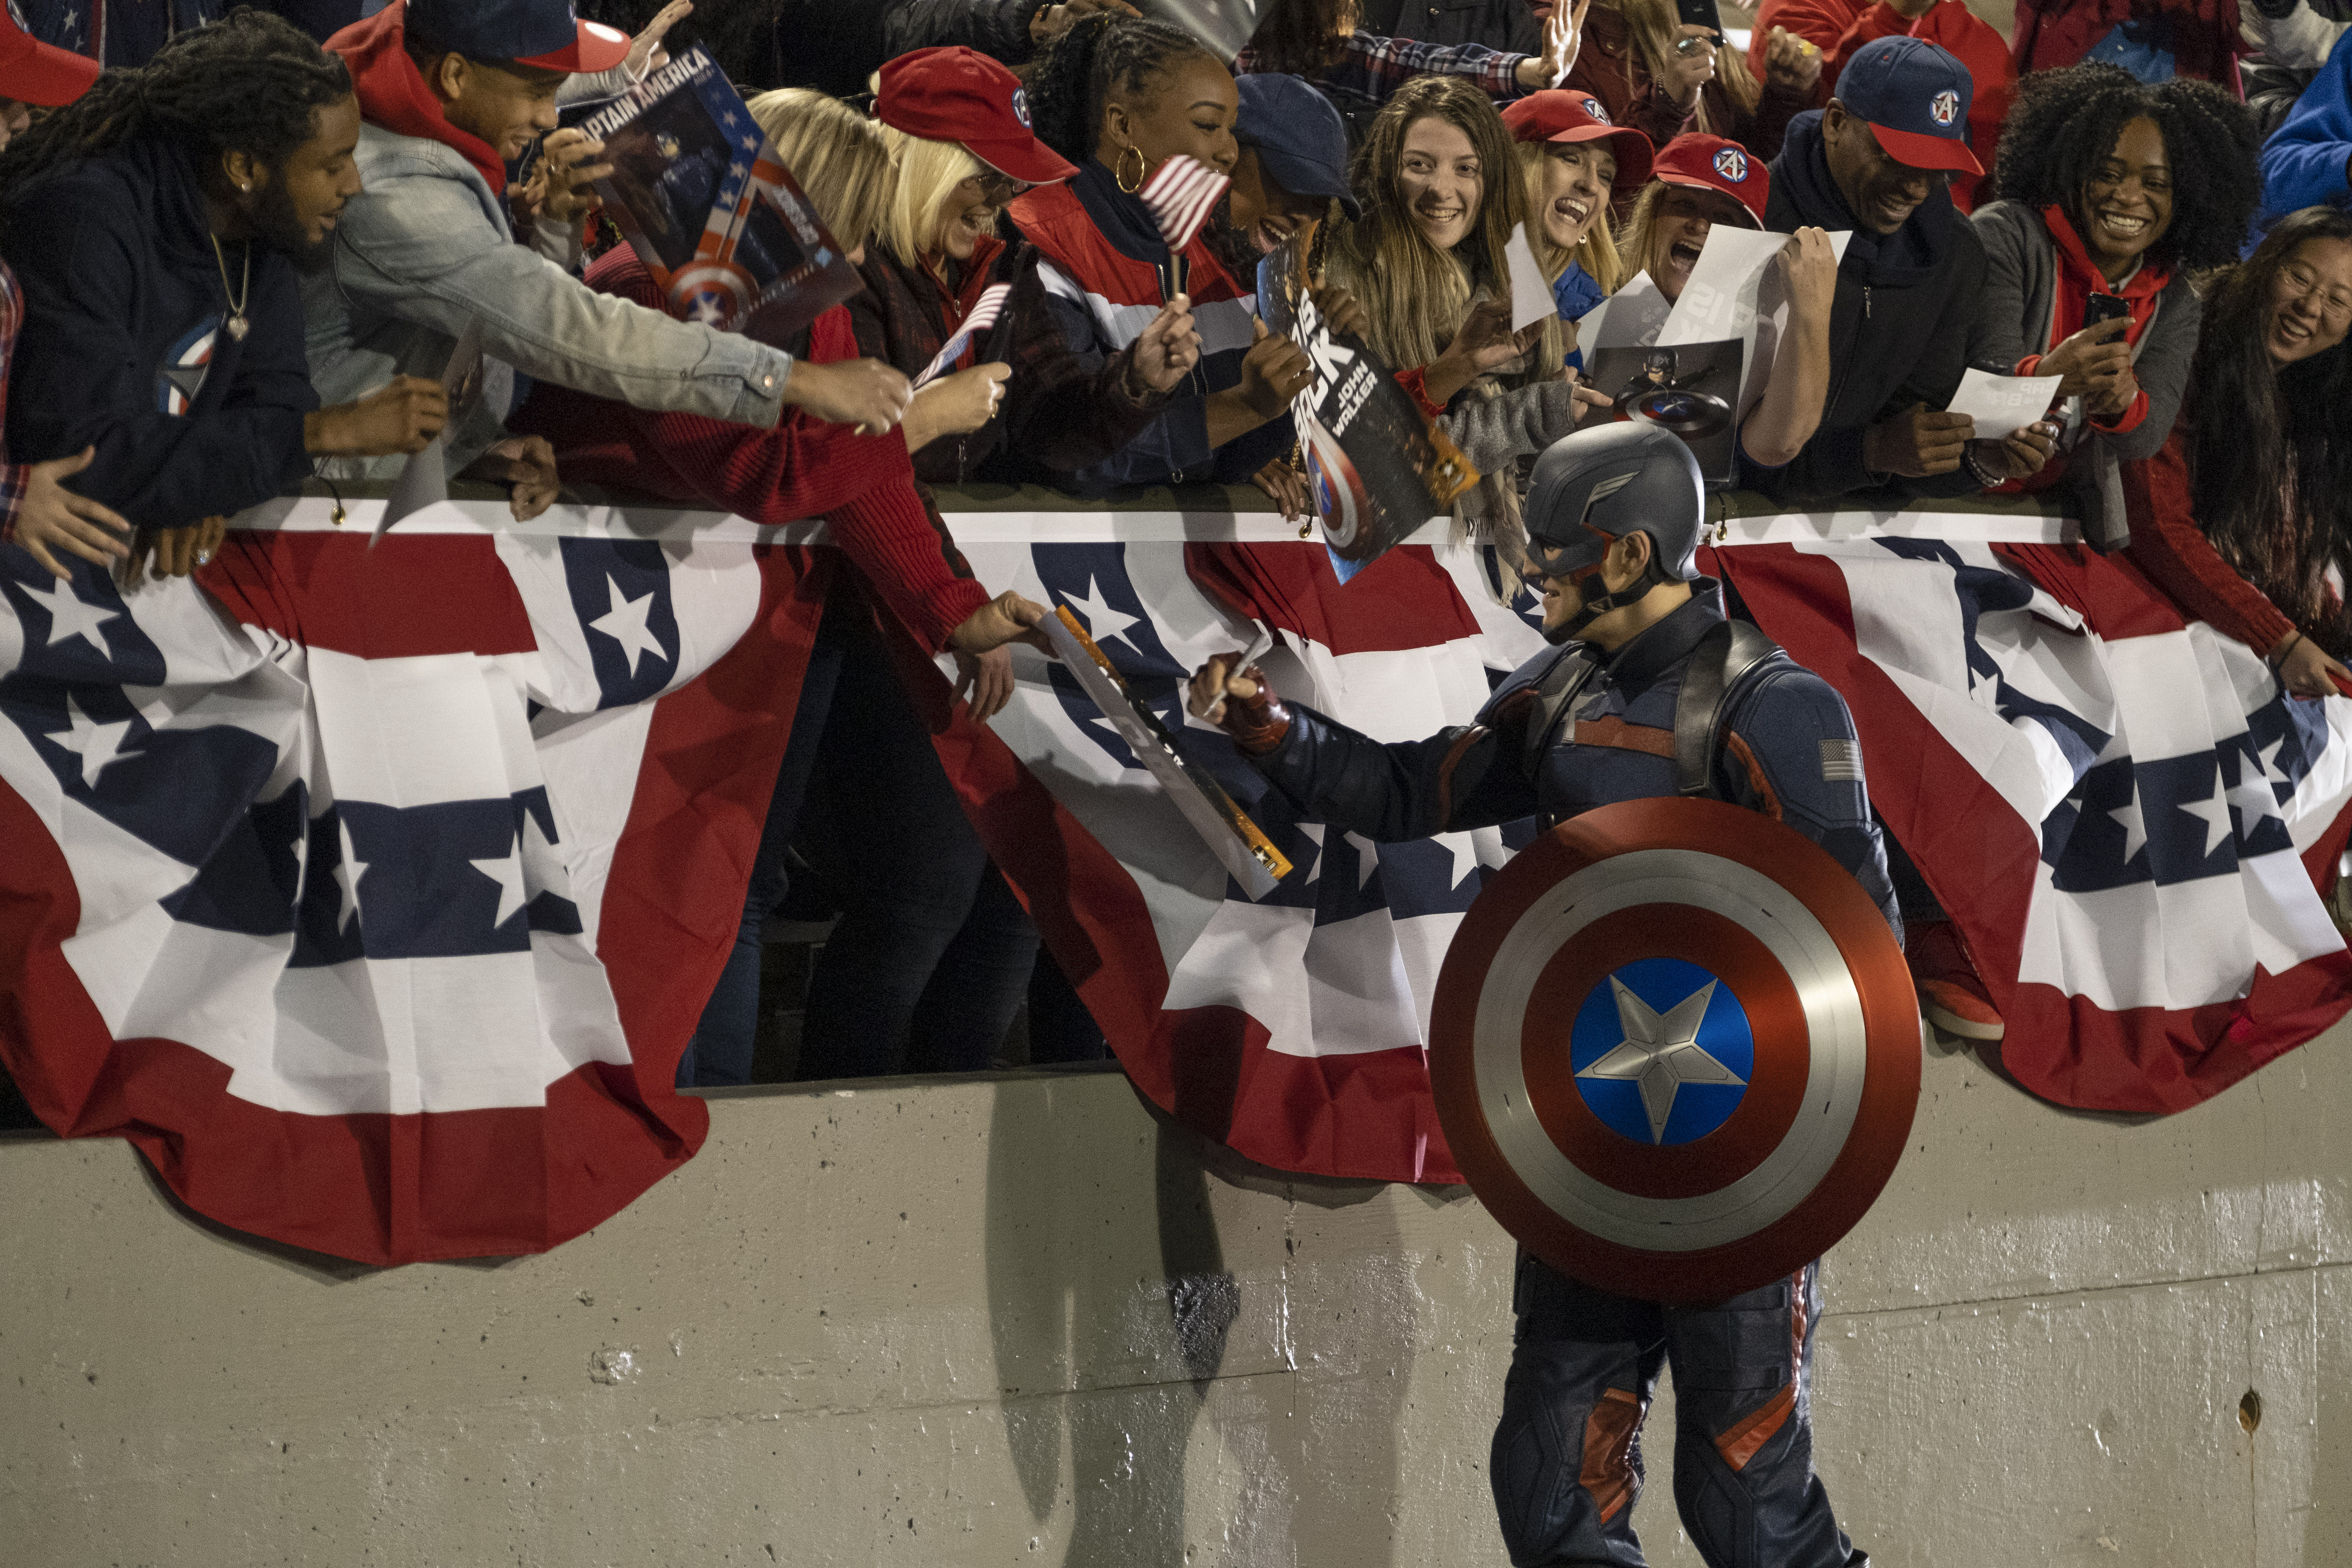 The new Captain America, John Walker, signs autographs at a rally in The Falcon and the Winter Soldier